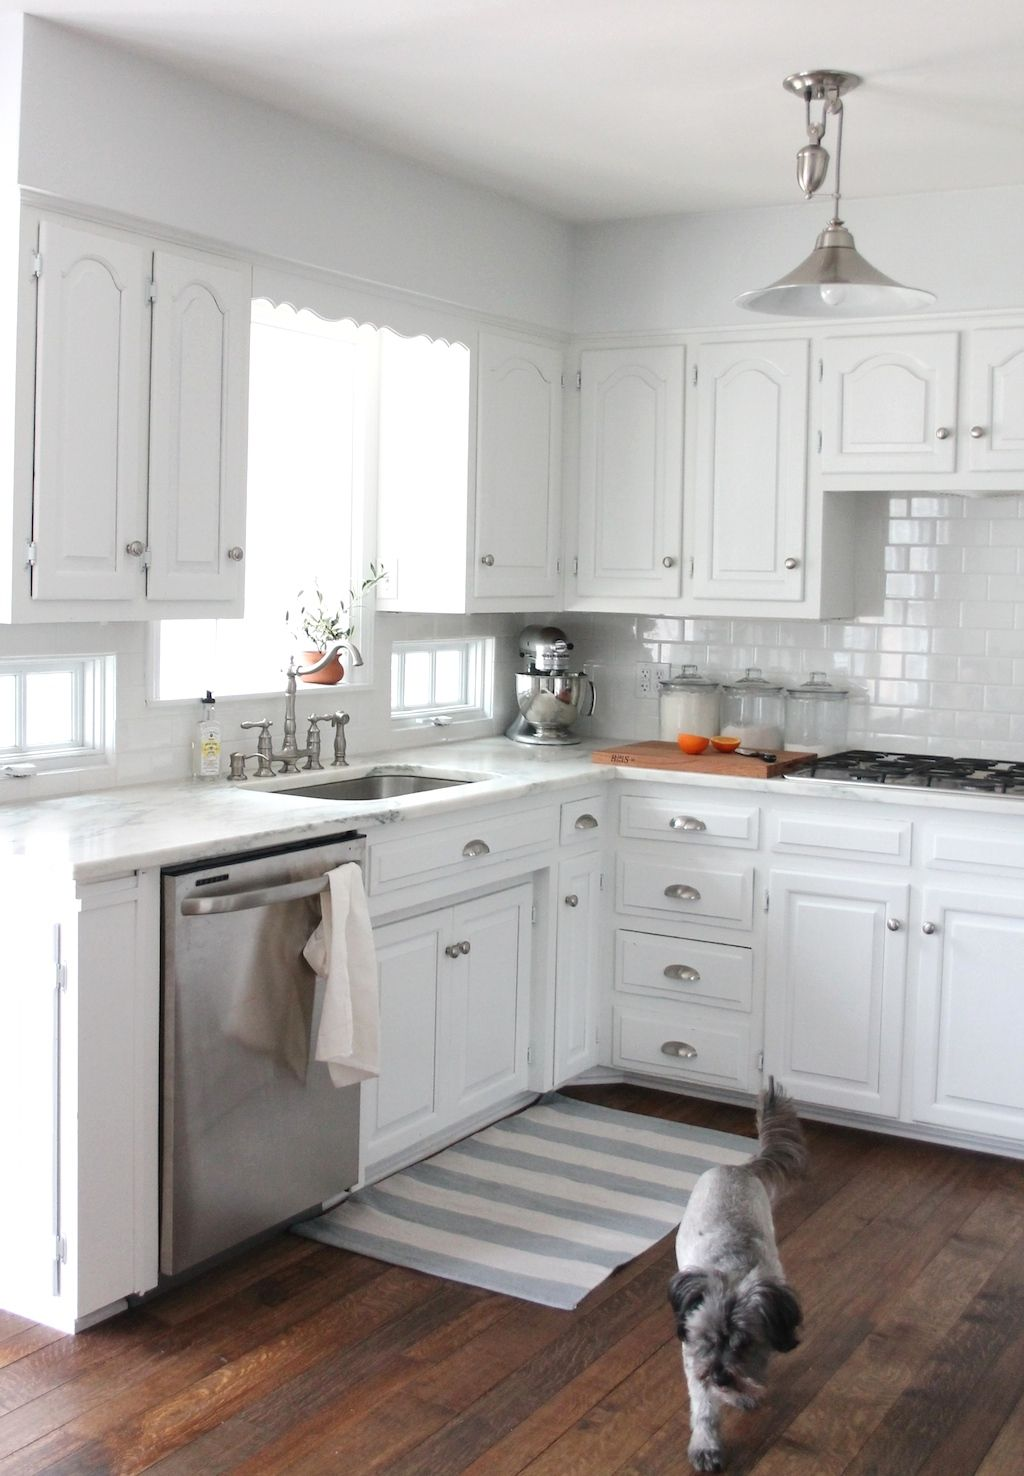 We did it our kitchen remodel easy diy projects and for Decorators white kitchen cabinets